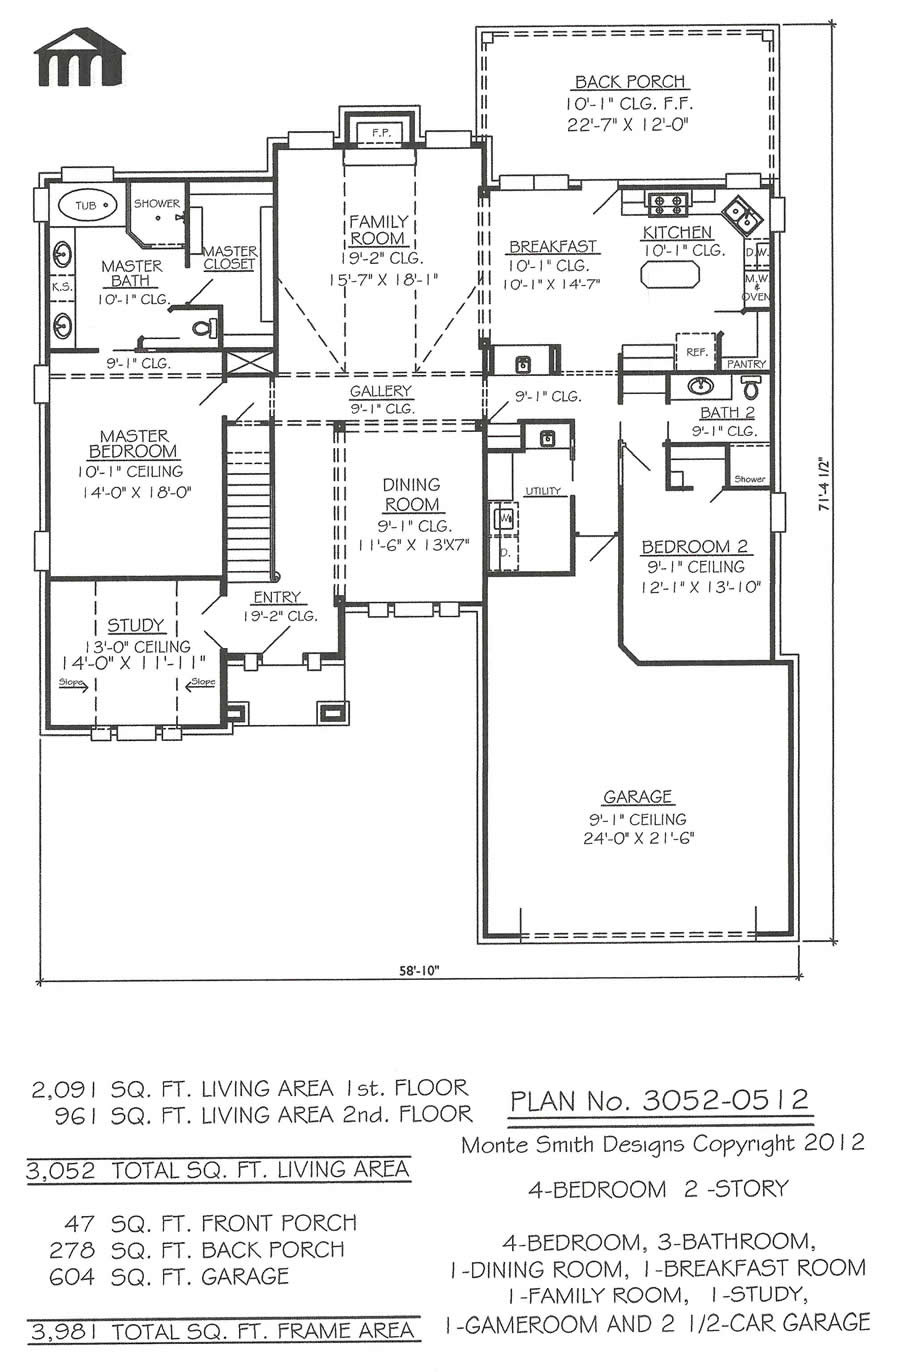 Design House Floor Plans Online Free Awesome 3042 0510 4 Bedroom 1 Story House Plan